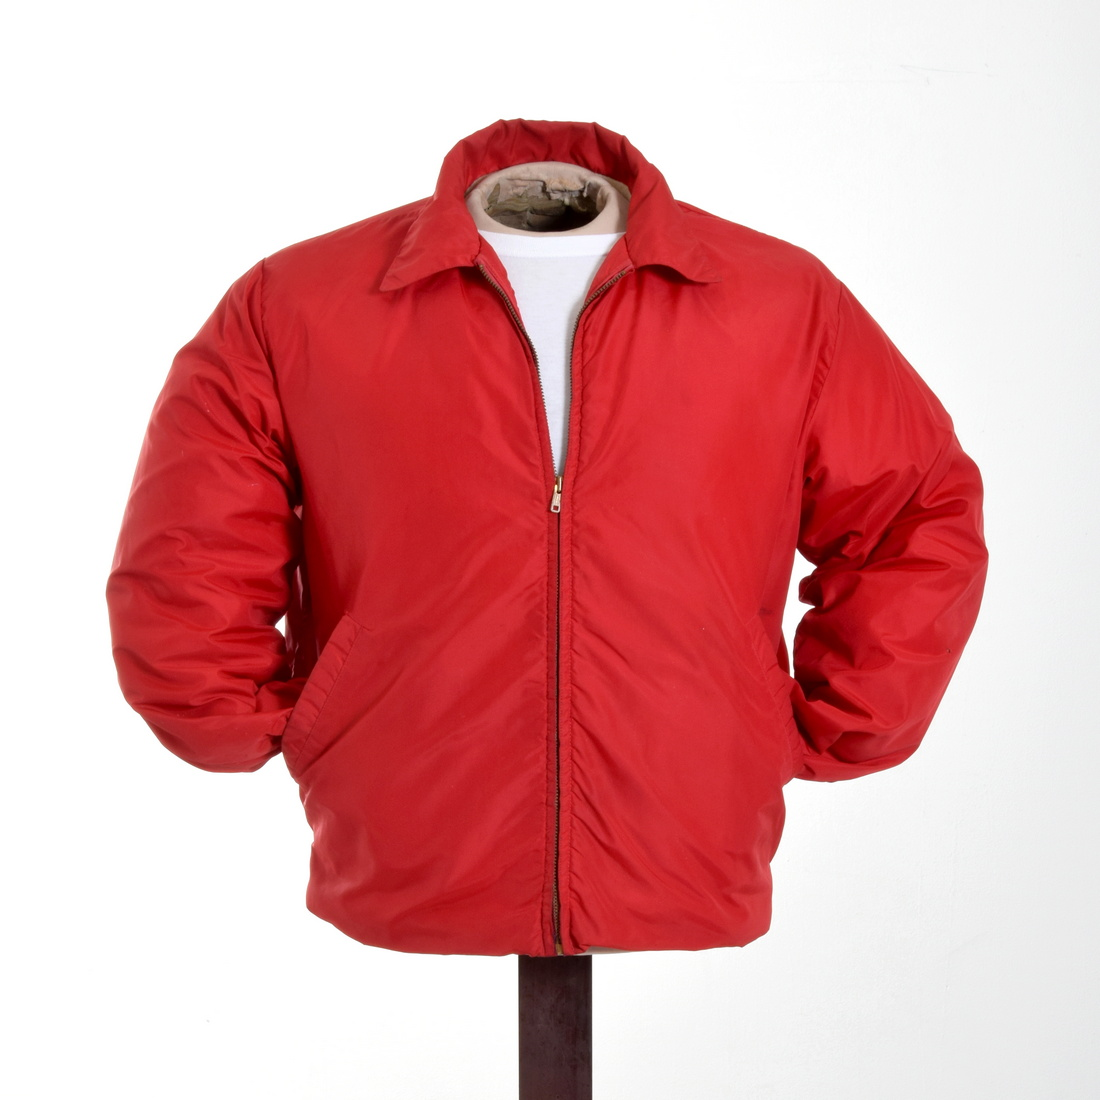 Jacket1955 CAUSE A Red REBEL James WITHOUT Dean 08wNmn